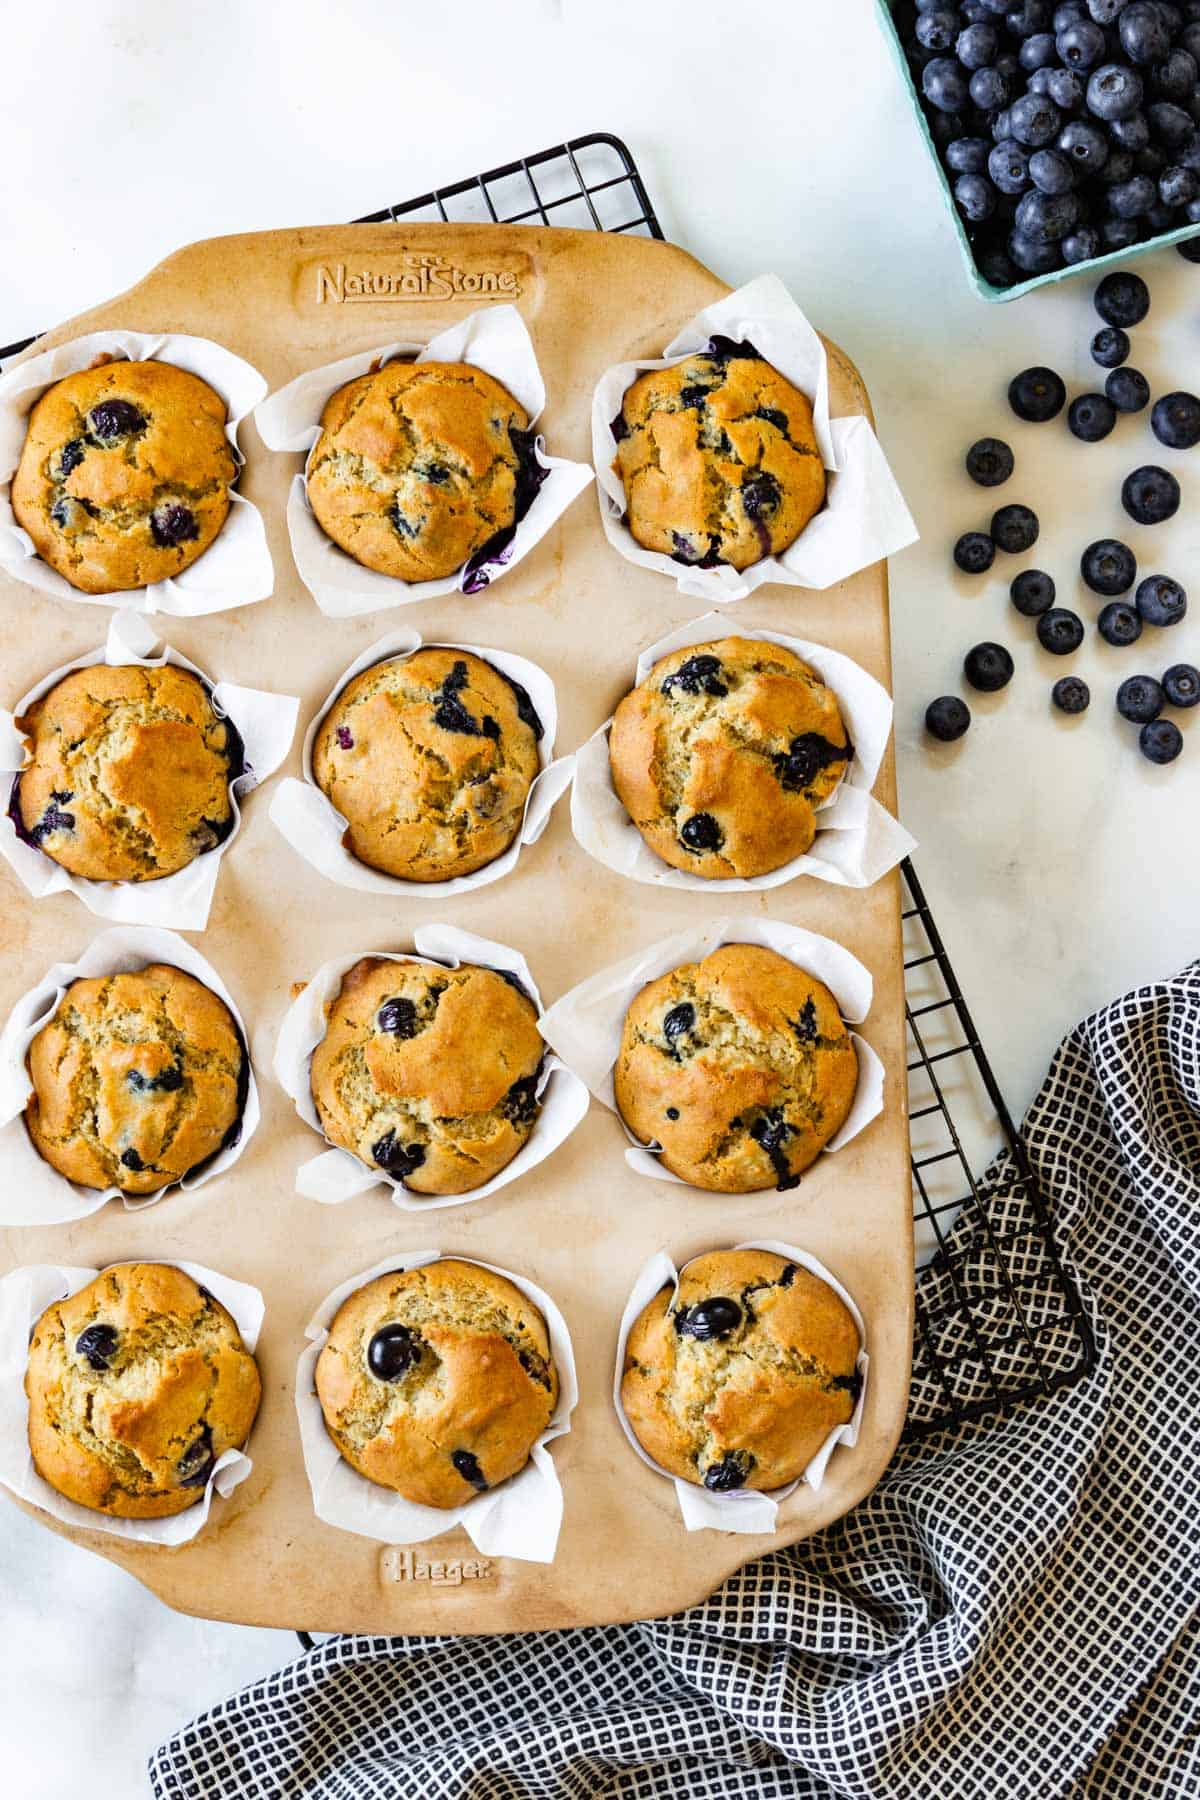 A muffin pan with freshly baked muffins sits on a wire cooling rack. A carton of blueberries sits nearby.